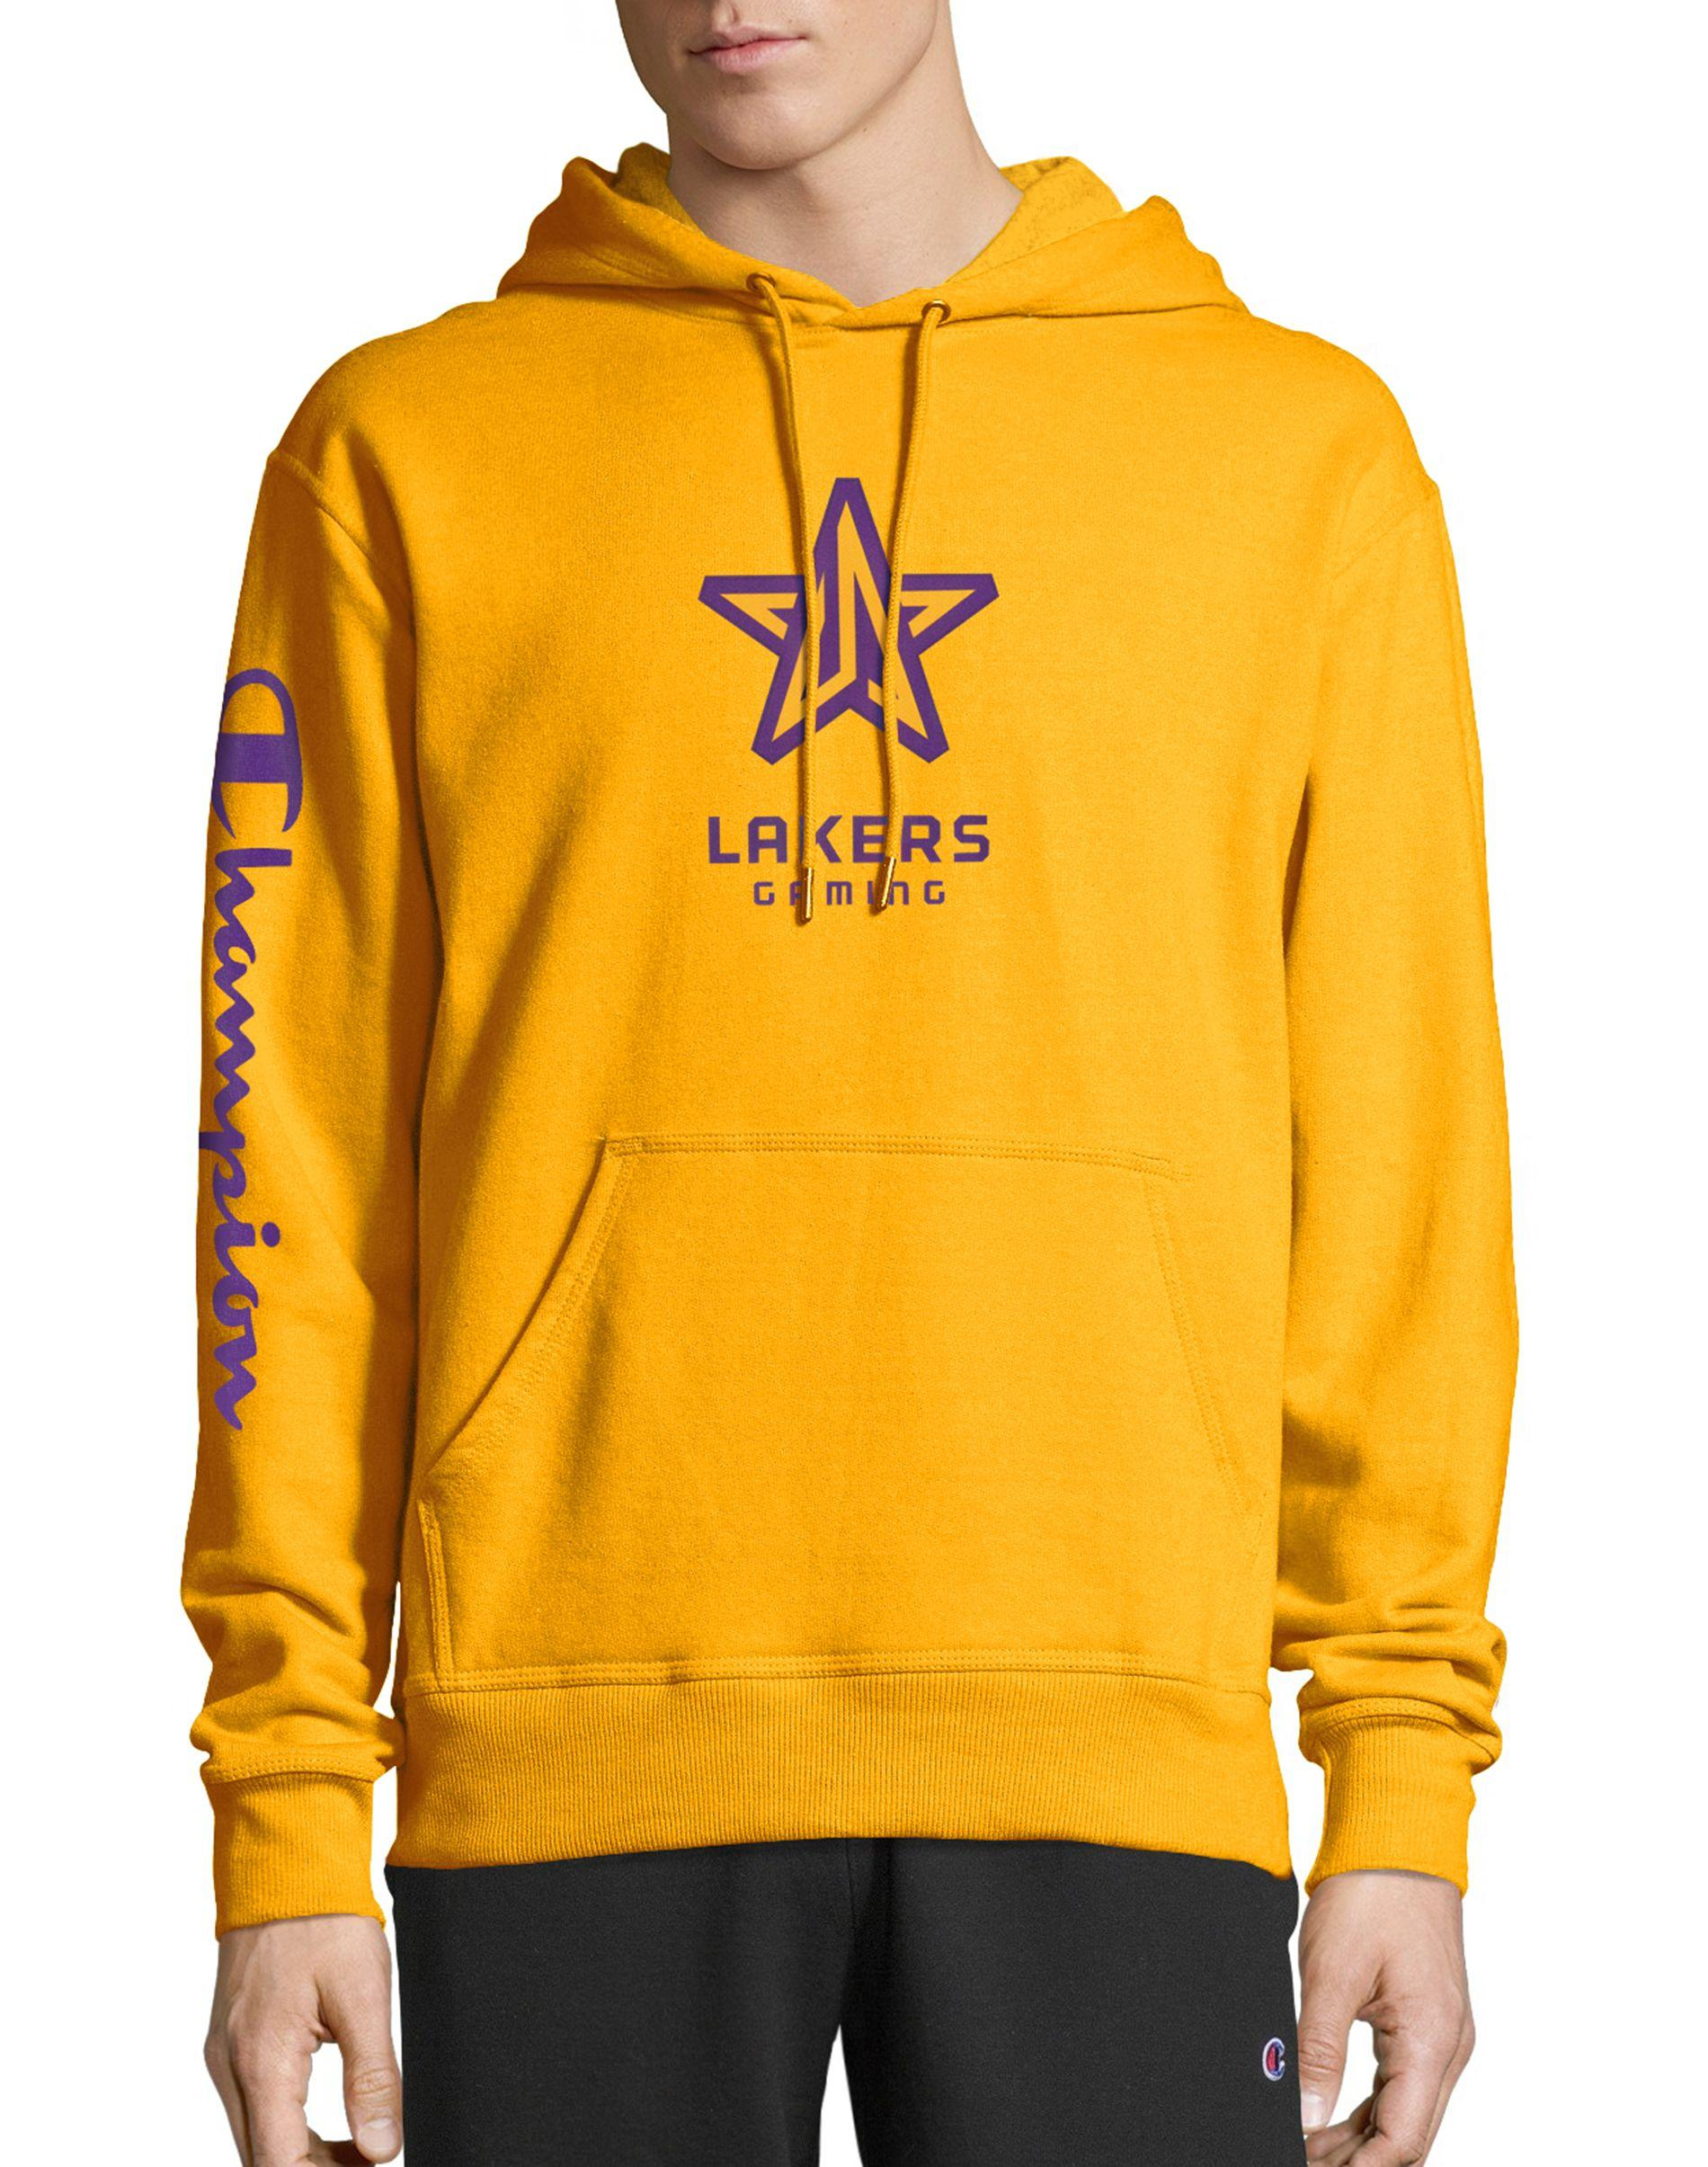 Champion Fleece Exclusive Nba 2k Los Angeles Lakers Gaming ...